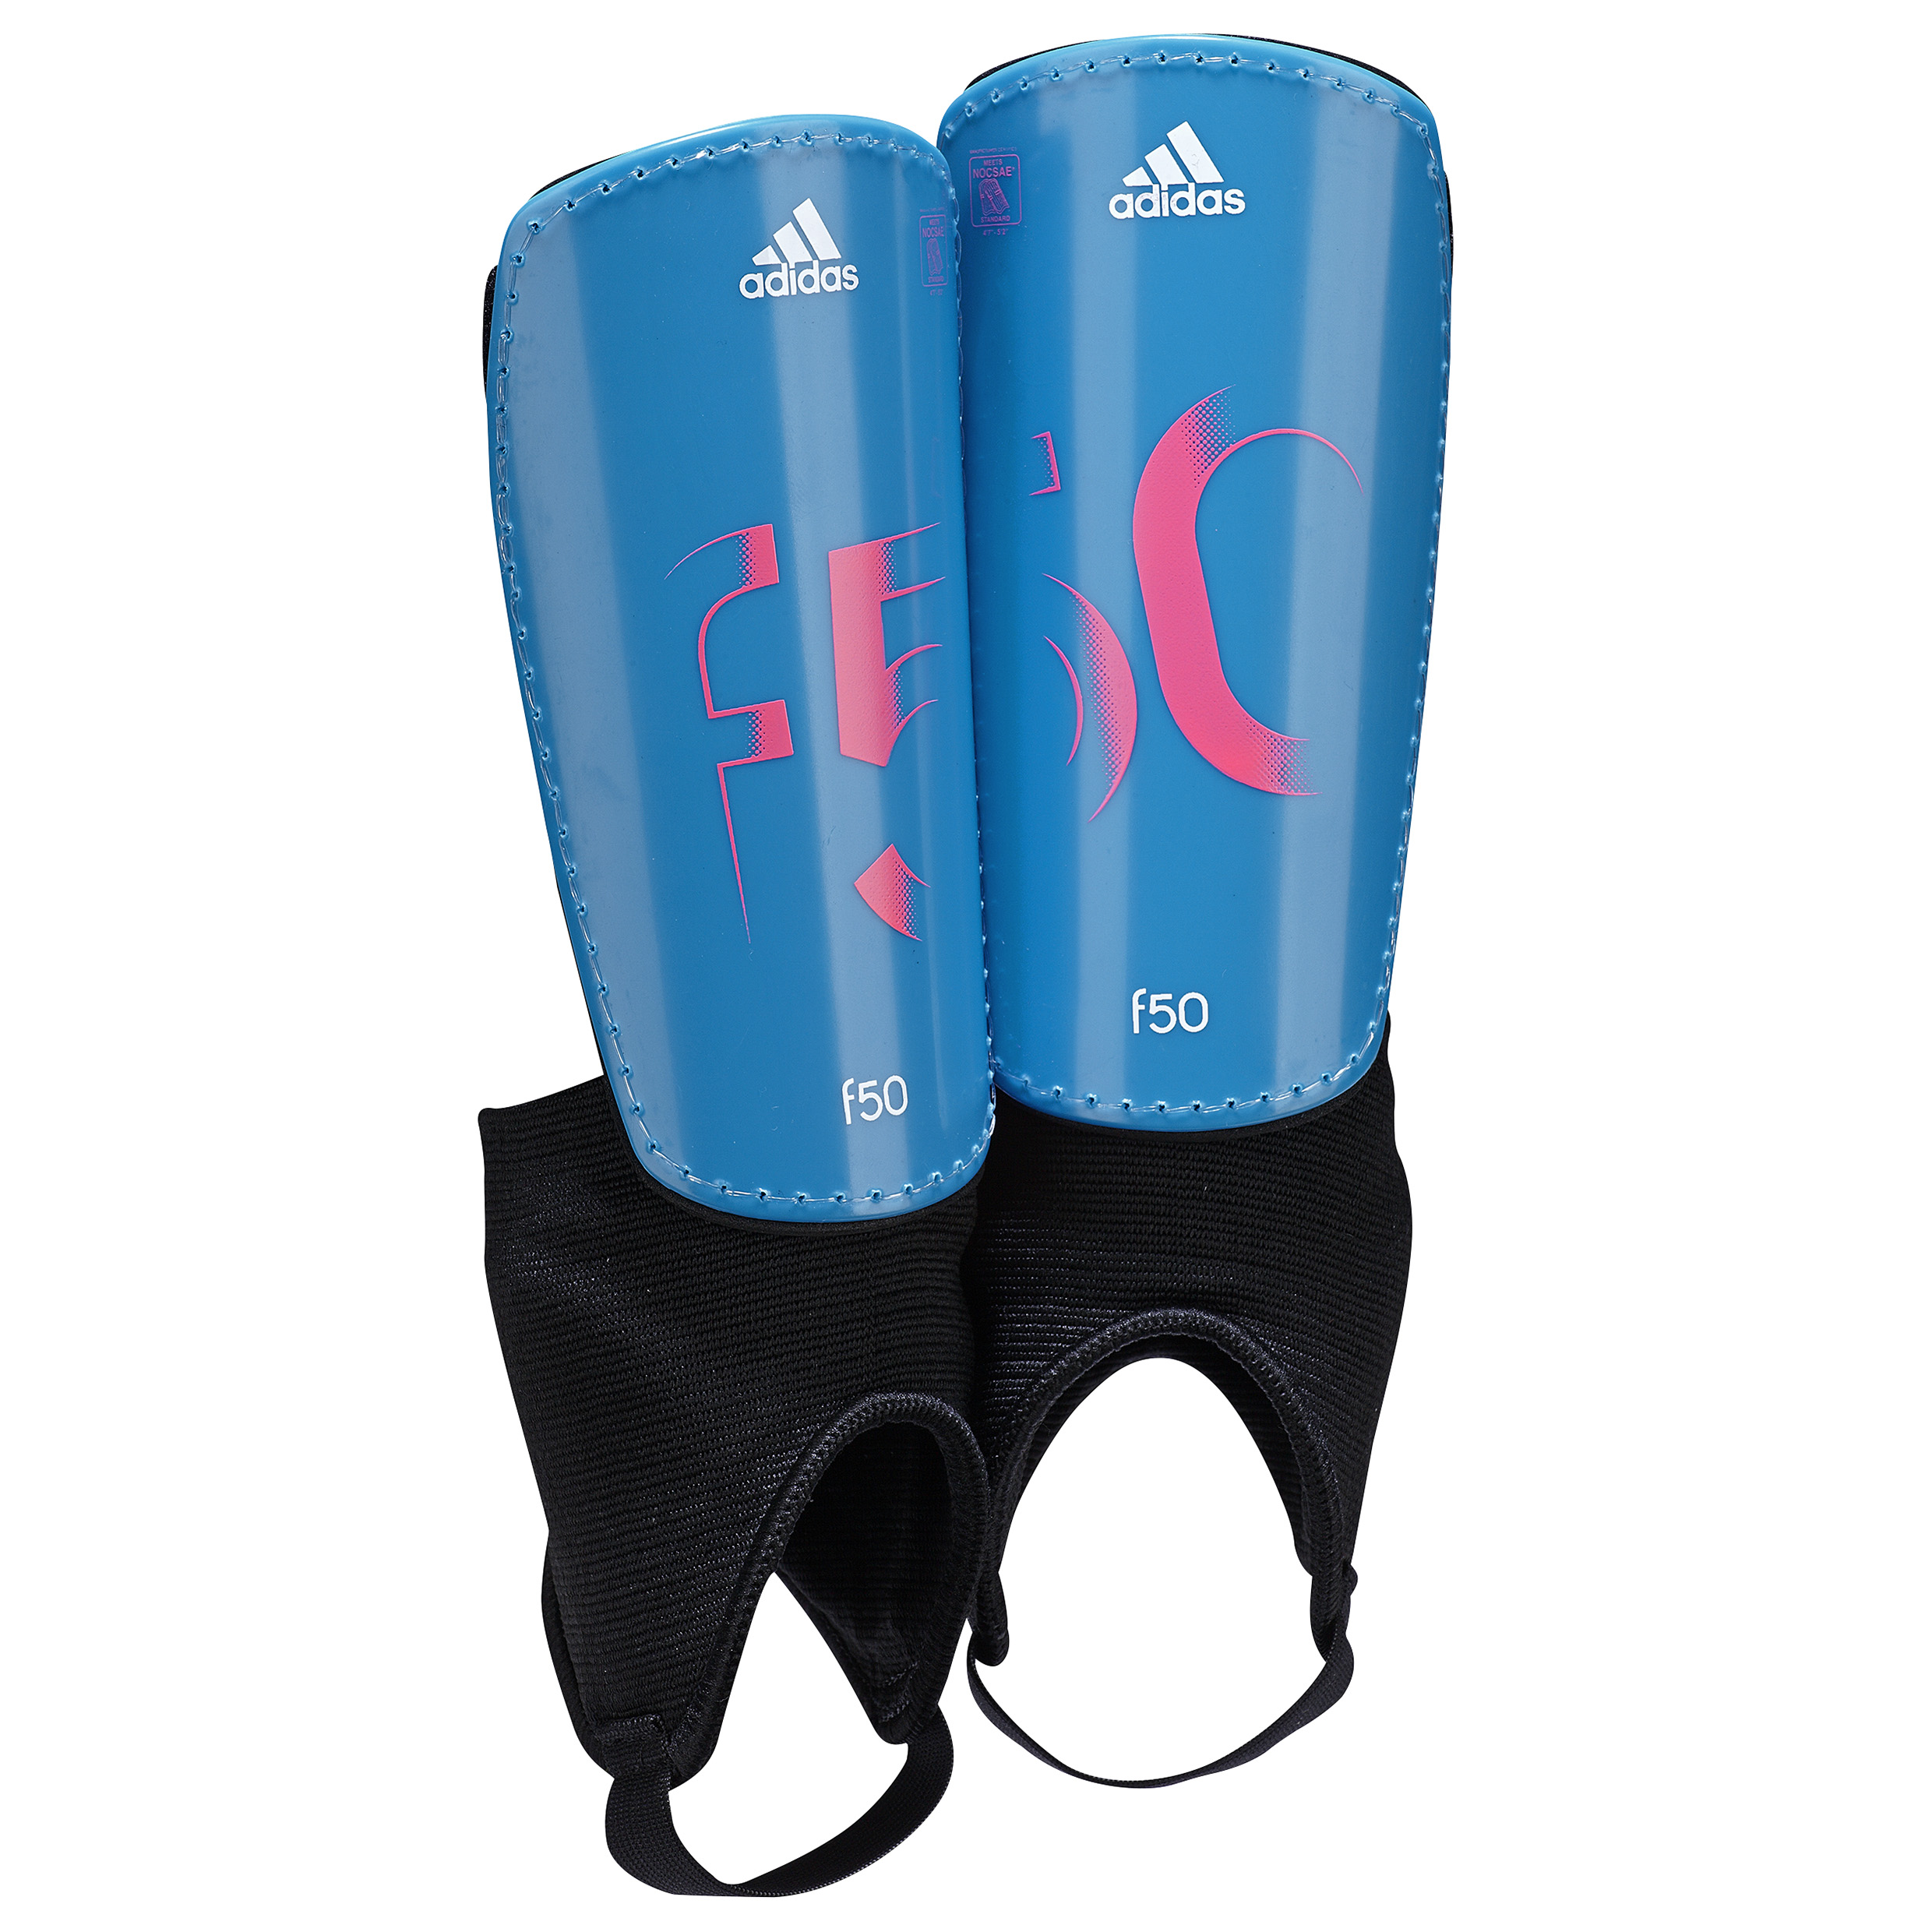 Adidas F50 Shinguards - Kids Sky Blue